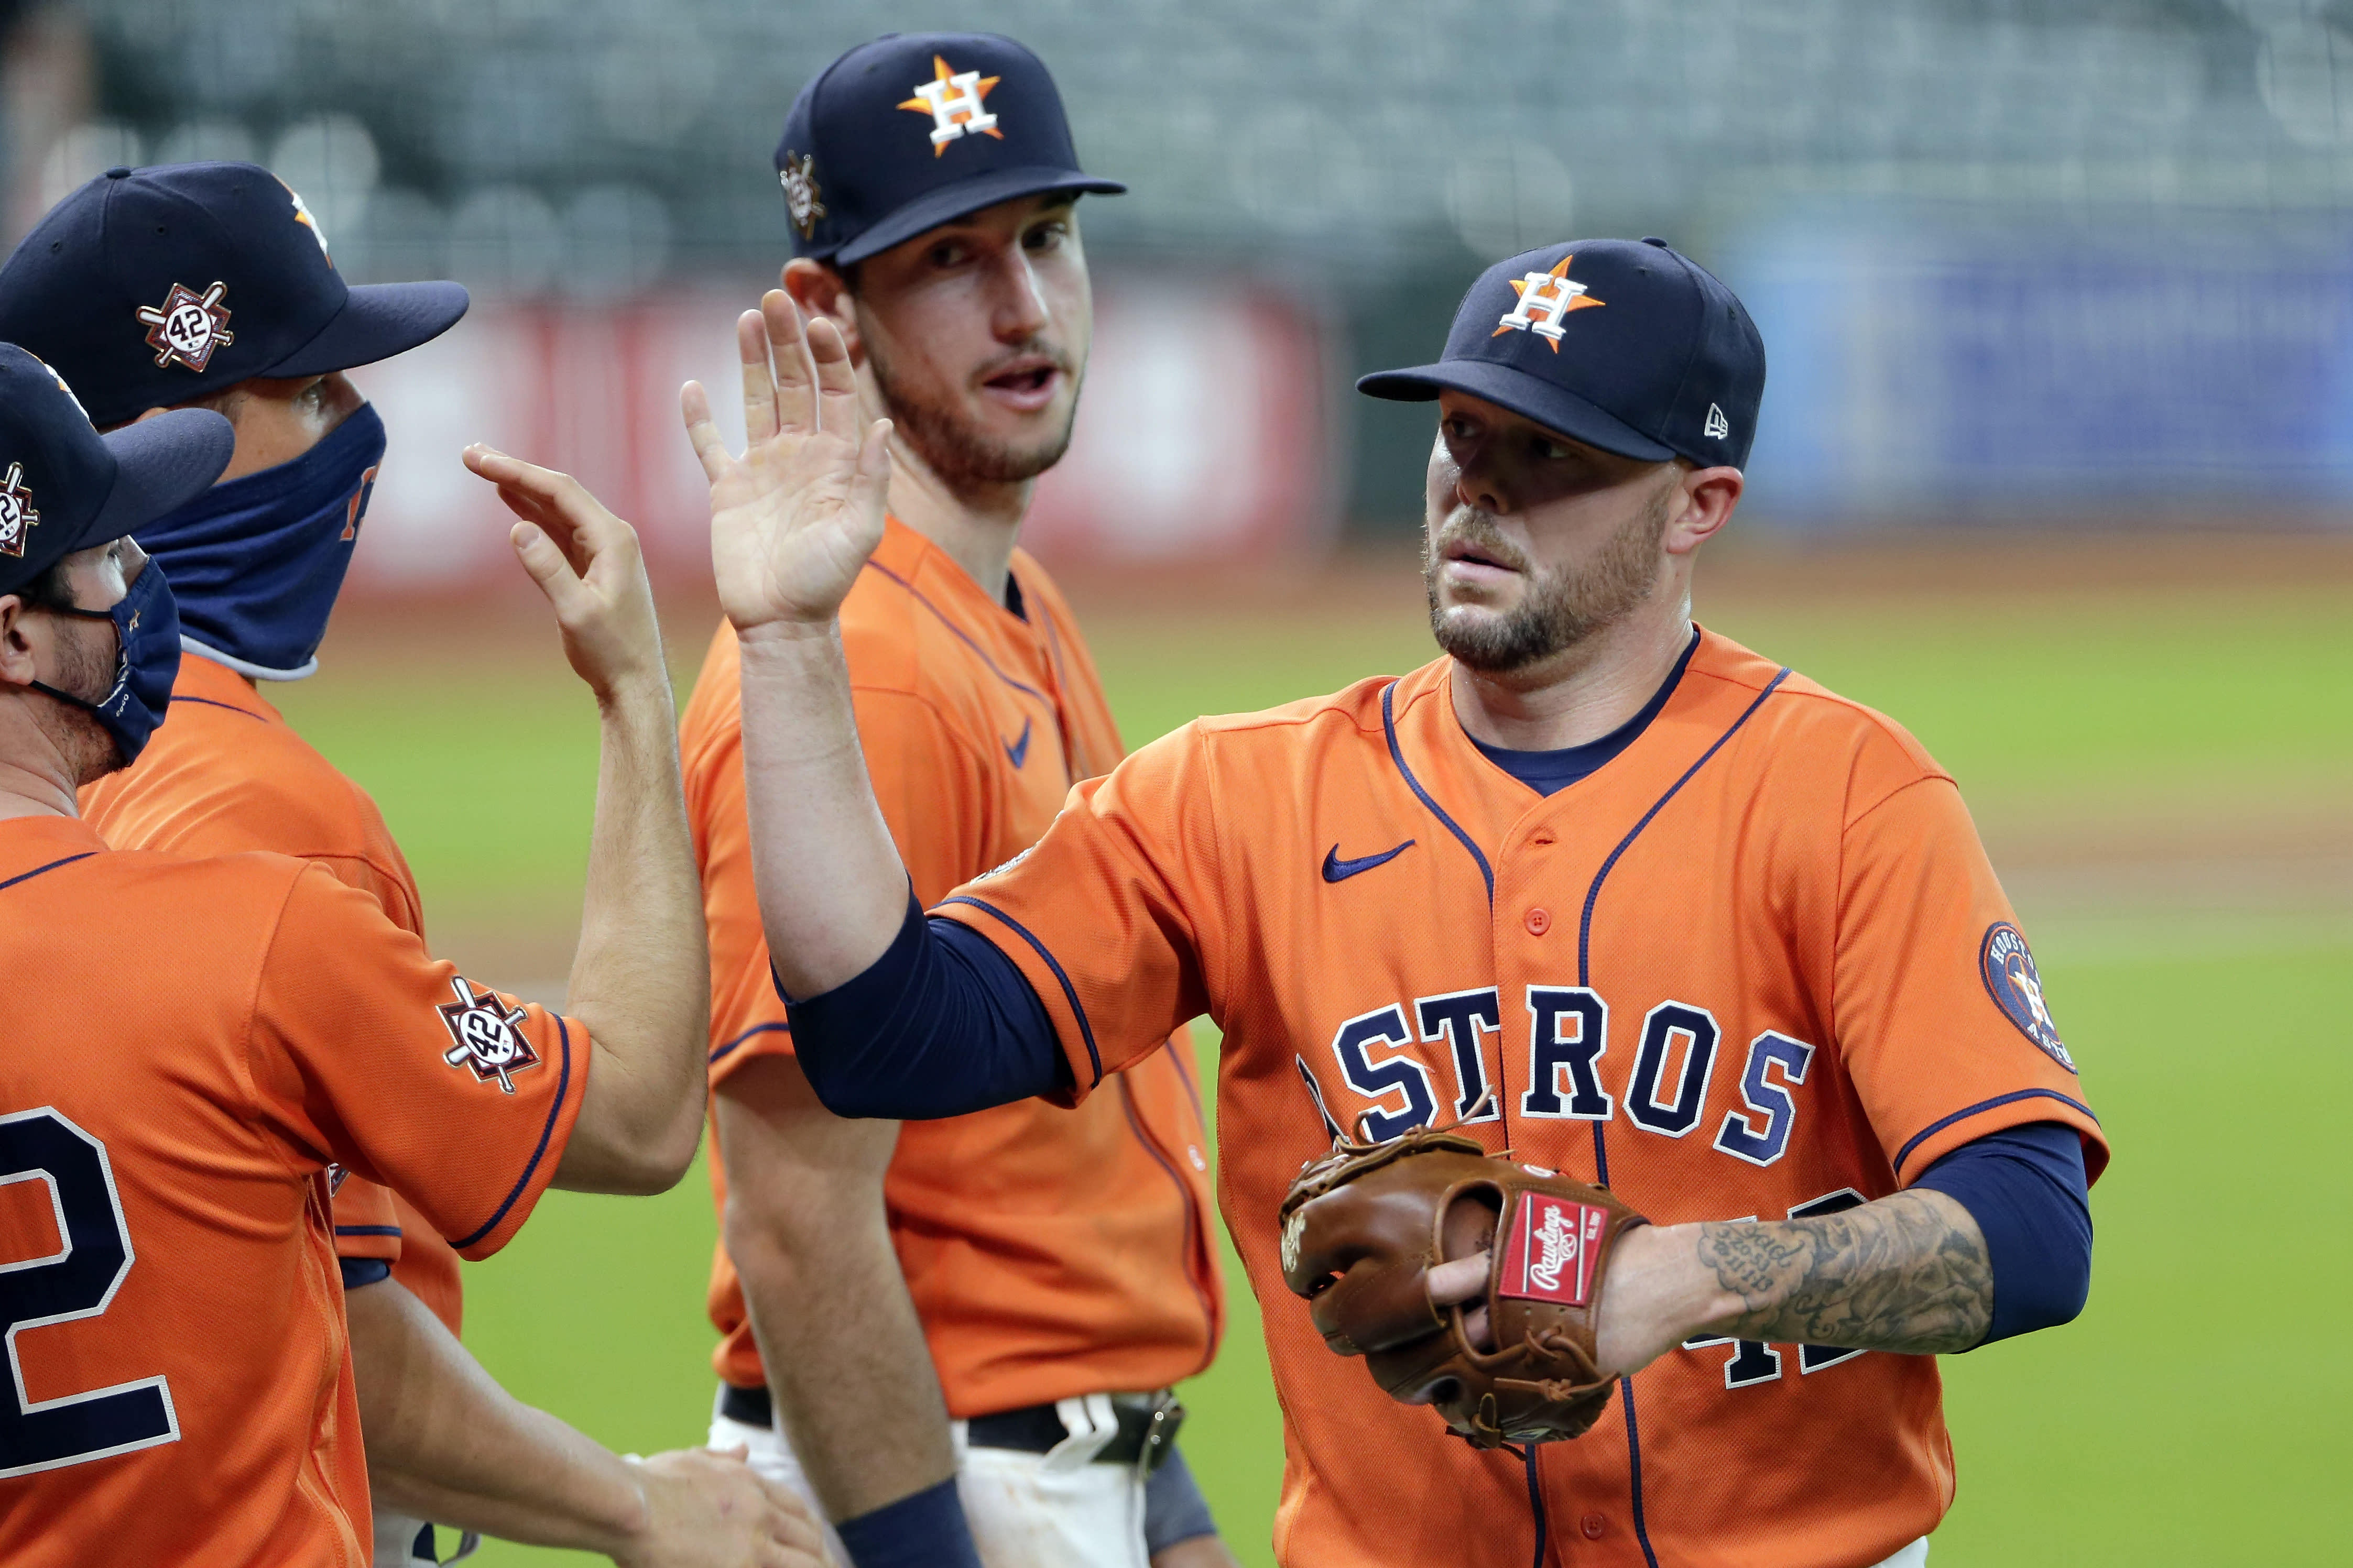 Houston Astros closing pitcher Ryan Pressly, right, collects near high-fives from teammates as Kyle Tucker, rear, watches after the team's 4-2 win over the Oakland Athletics in the first baseball game of a doubleheader Saturday, Aug. 29, 2020, in Houston. All players and managers are wearing No. 42 as a tribute to baseball great Jackie Robinson. (AP Photo/Michael Wyke)